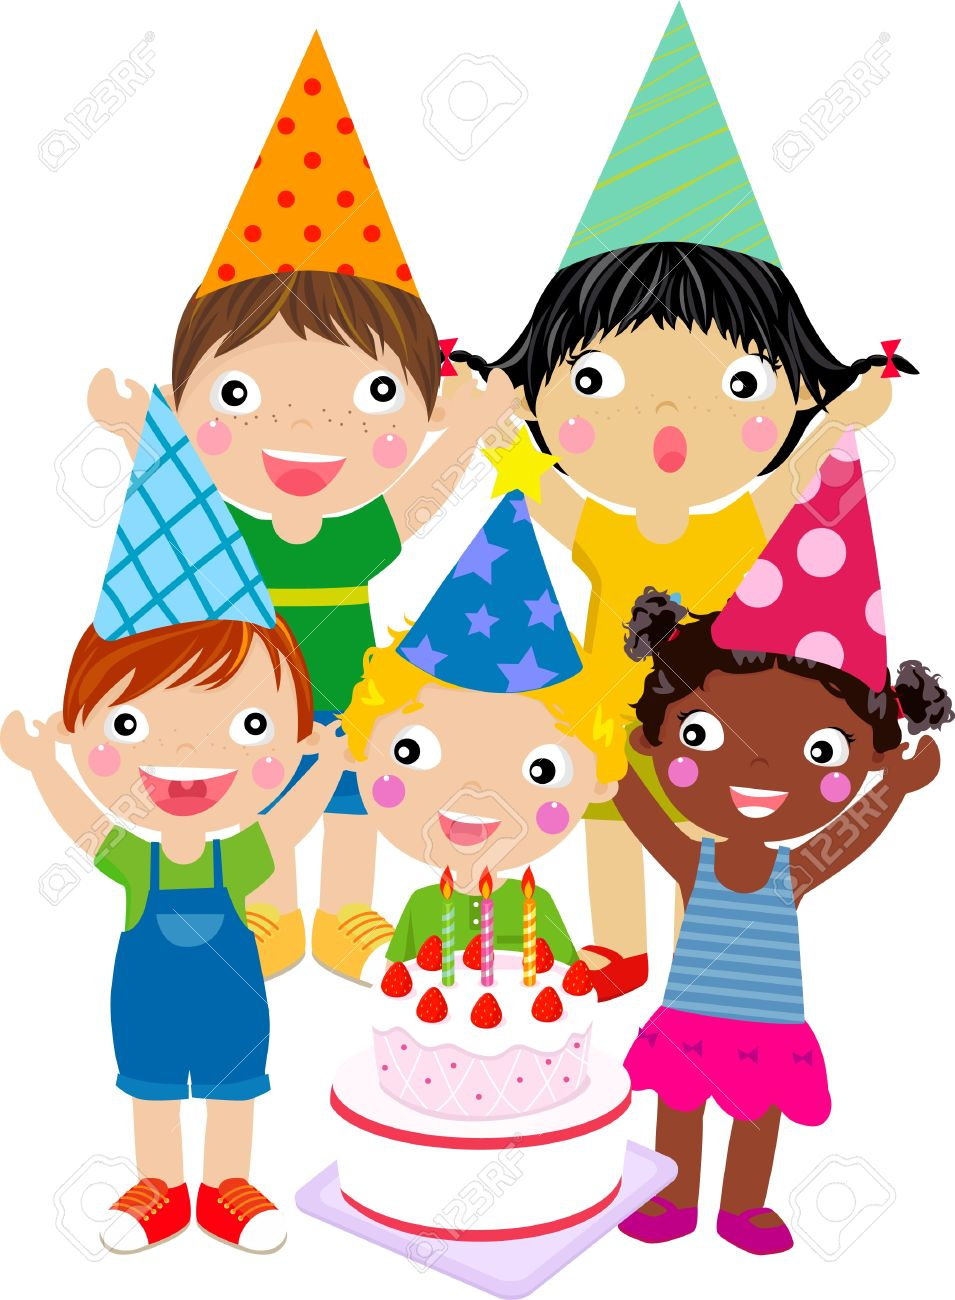 kids and birthday cake royalty free cliparts vectors and stock rh 123rf com Birthday Card Clip Art Birthday Card Clip Art